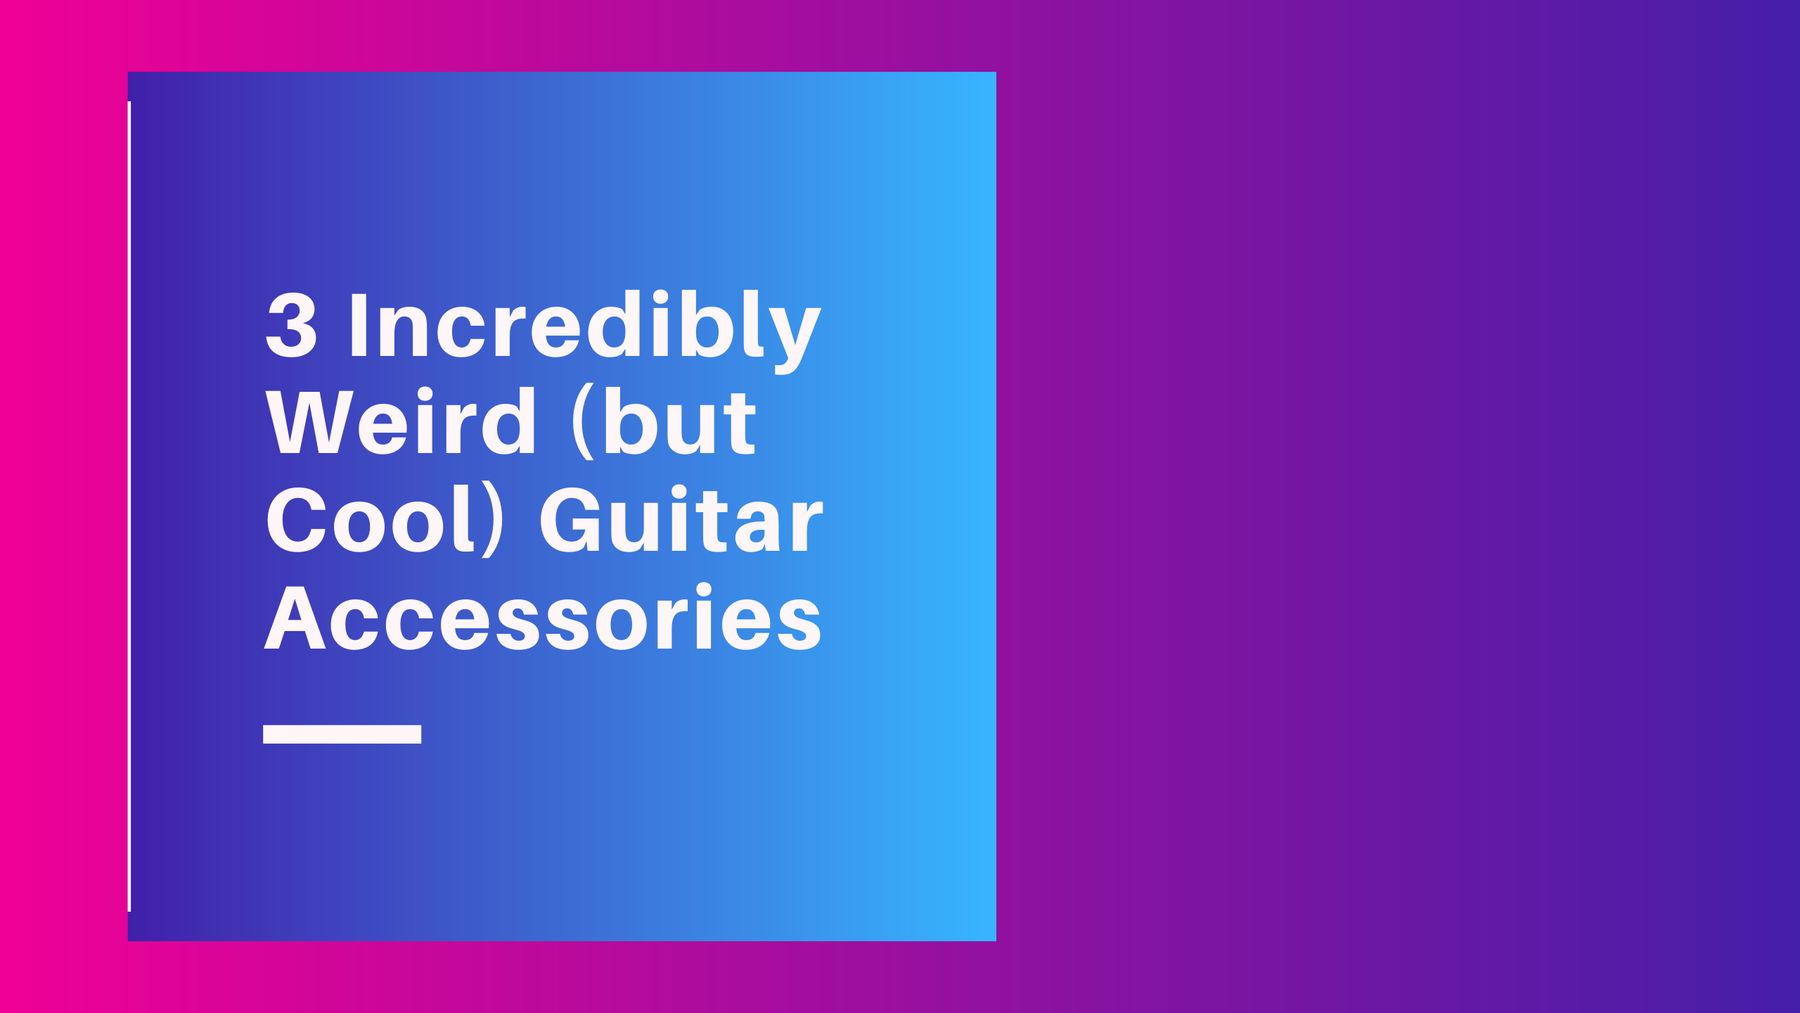 3 Incredibly Weird (but Cool) Guitar Accessories